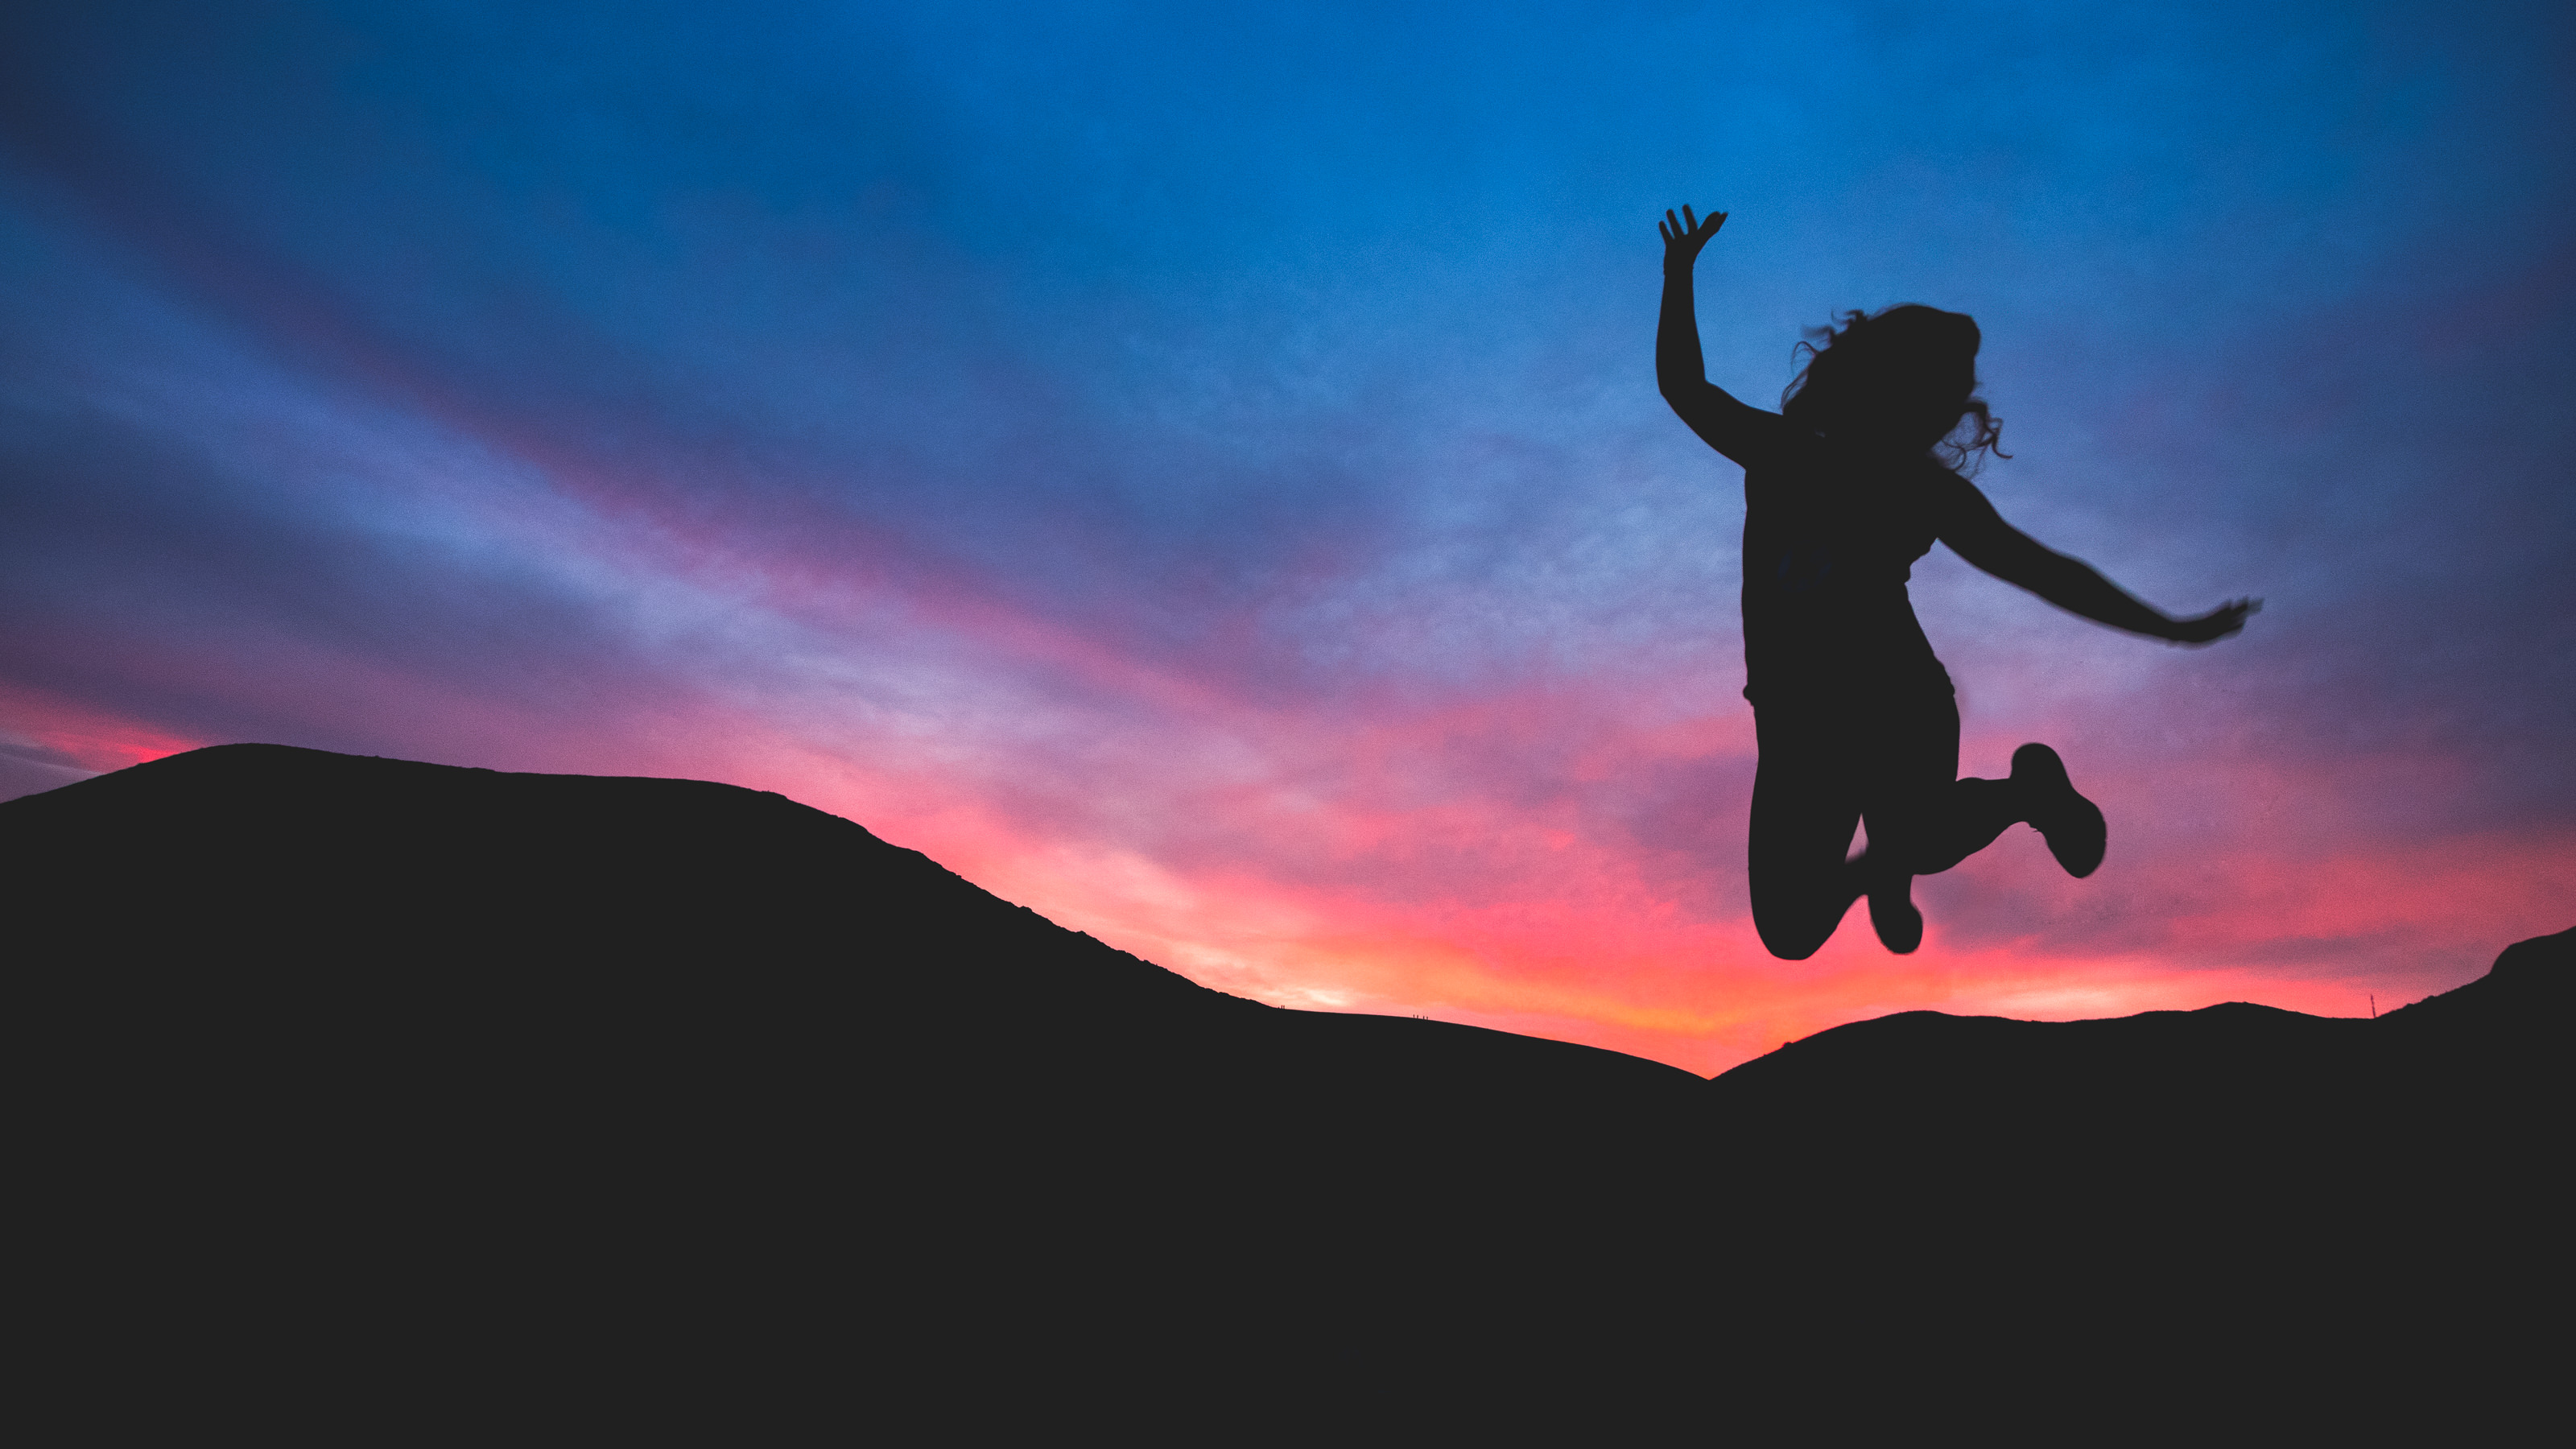 Silhouette of a woman jumping against a sunset